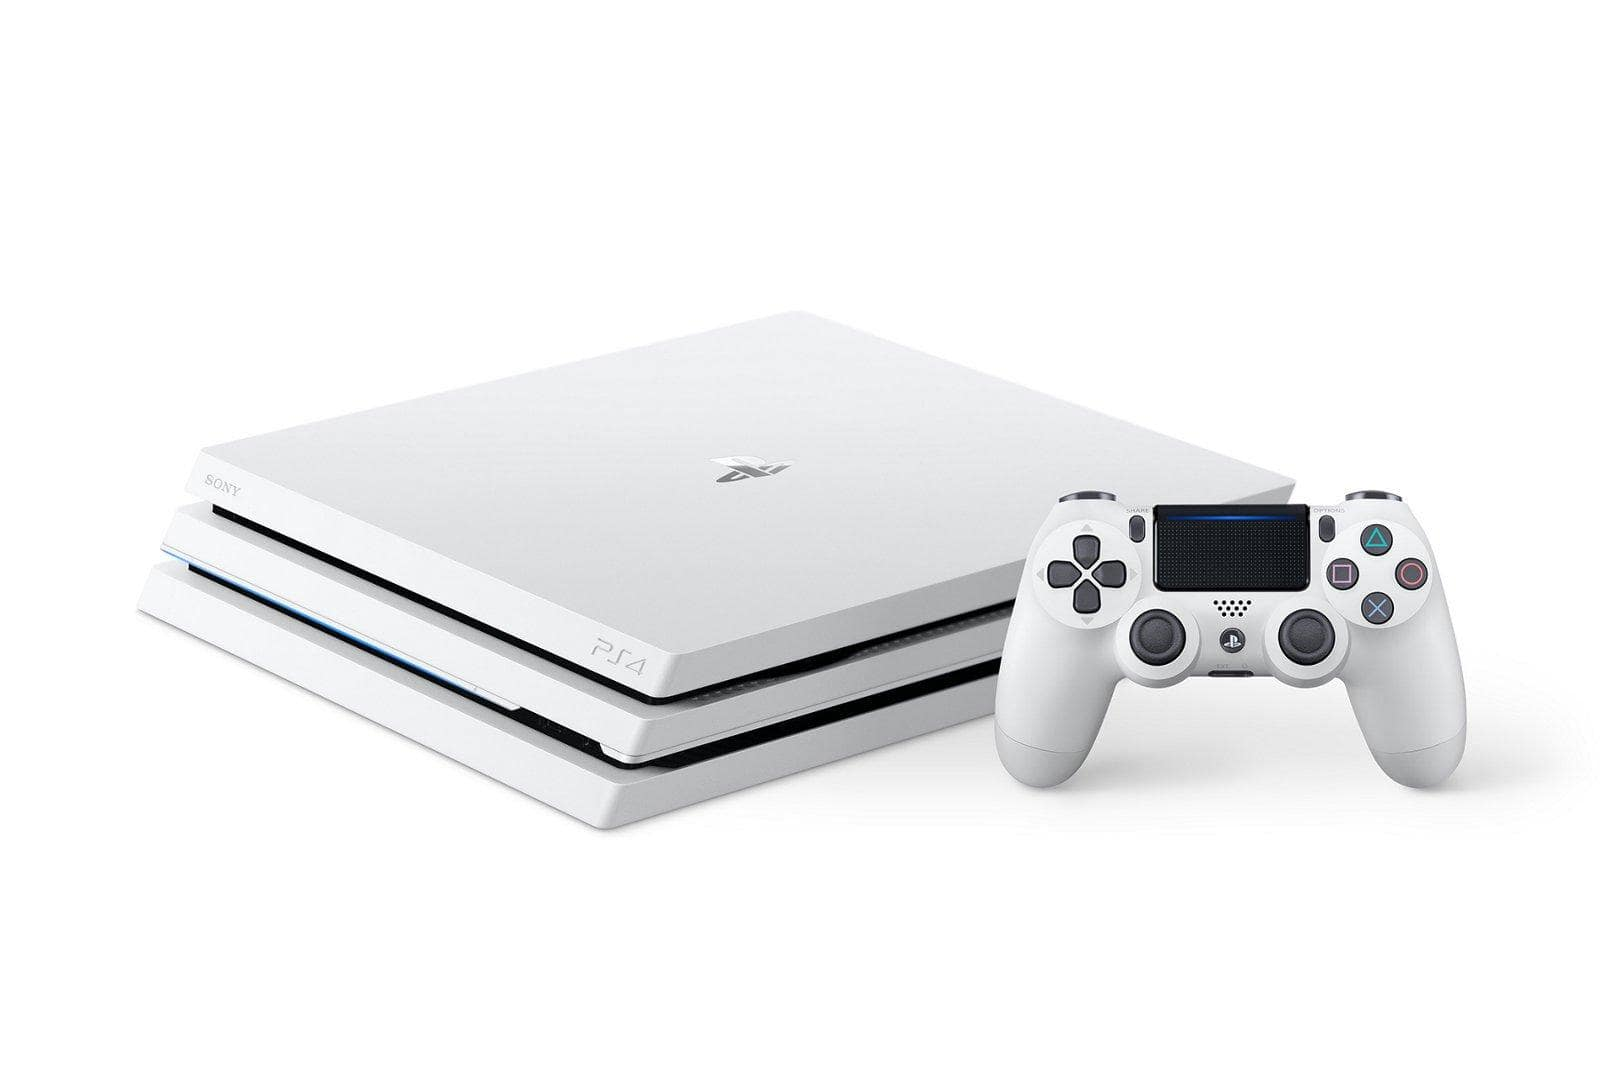 PlayStation 4 Pro Glacier White 1TB (Game Stop) $299.99 + Get a $25 Gift Coupon Online Only